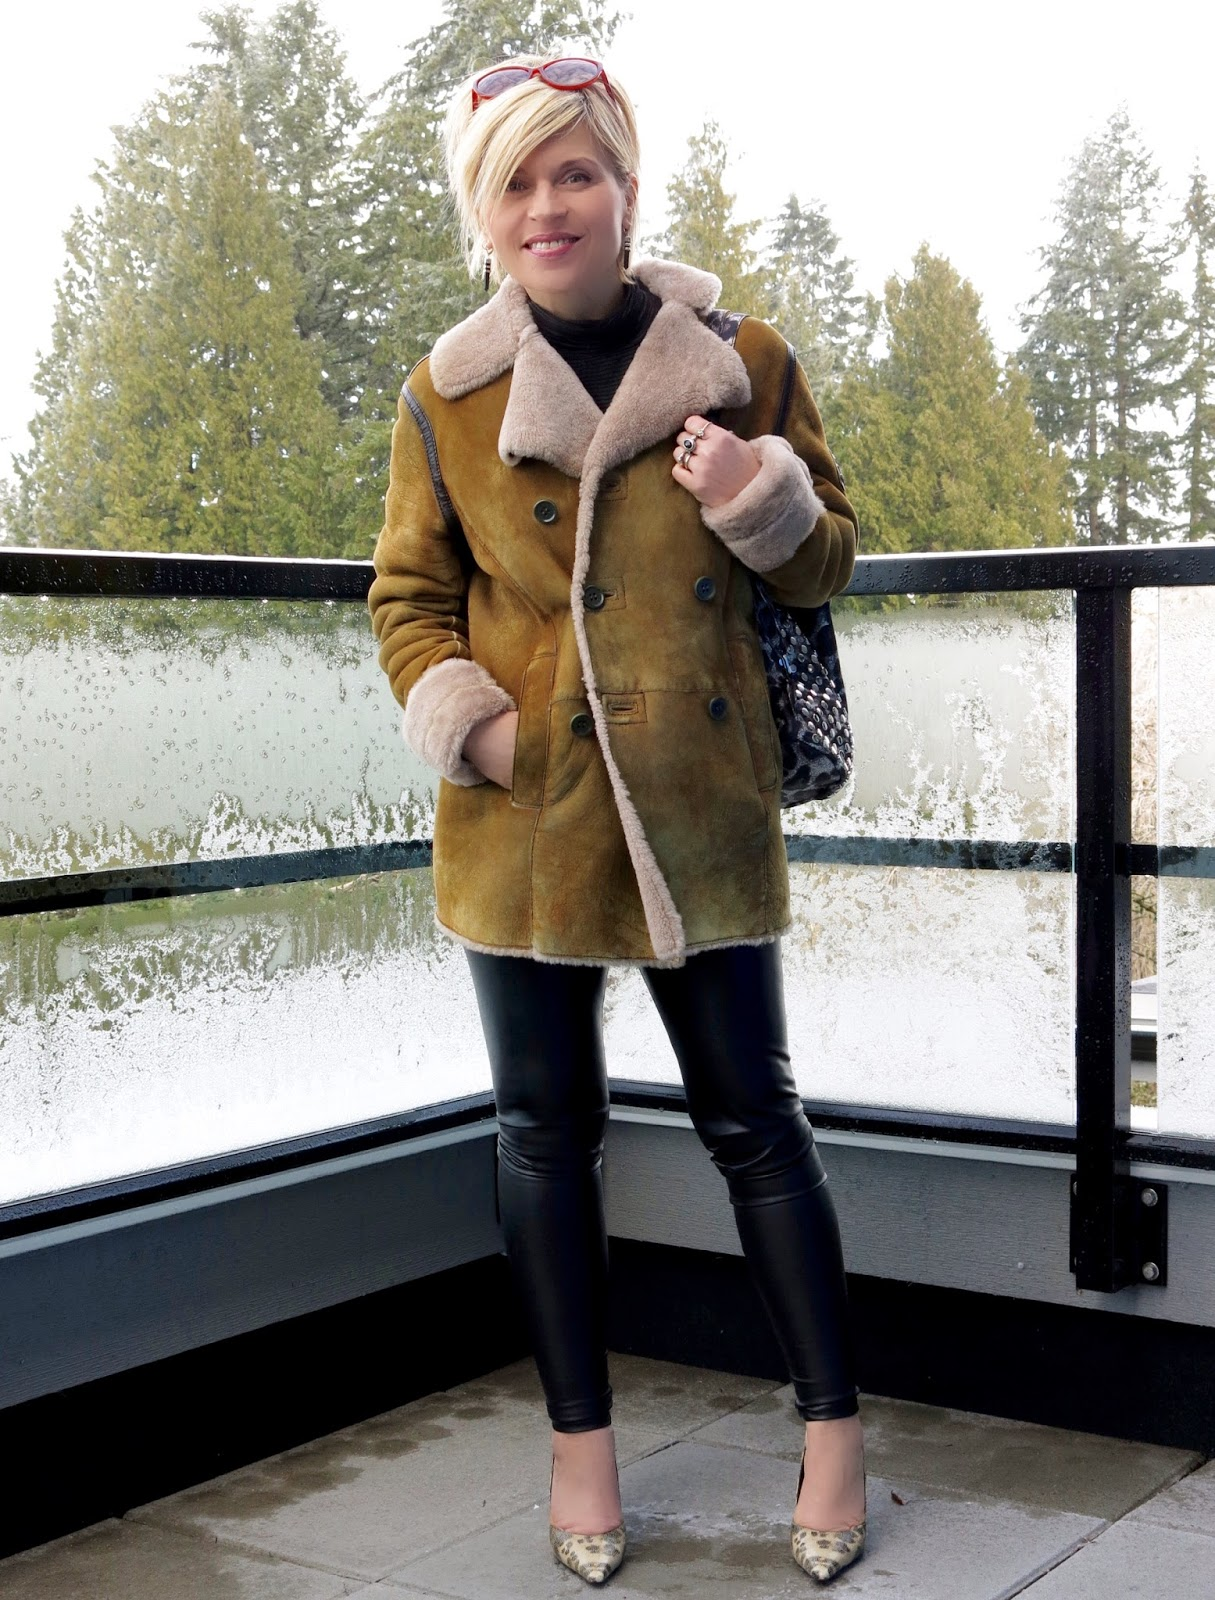 styling a sheepskin coat with faux-leather leggings, reptile pumps, and cat-eye sunglasses